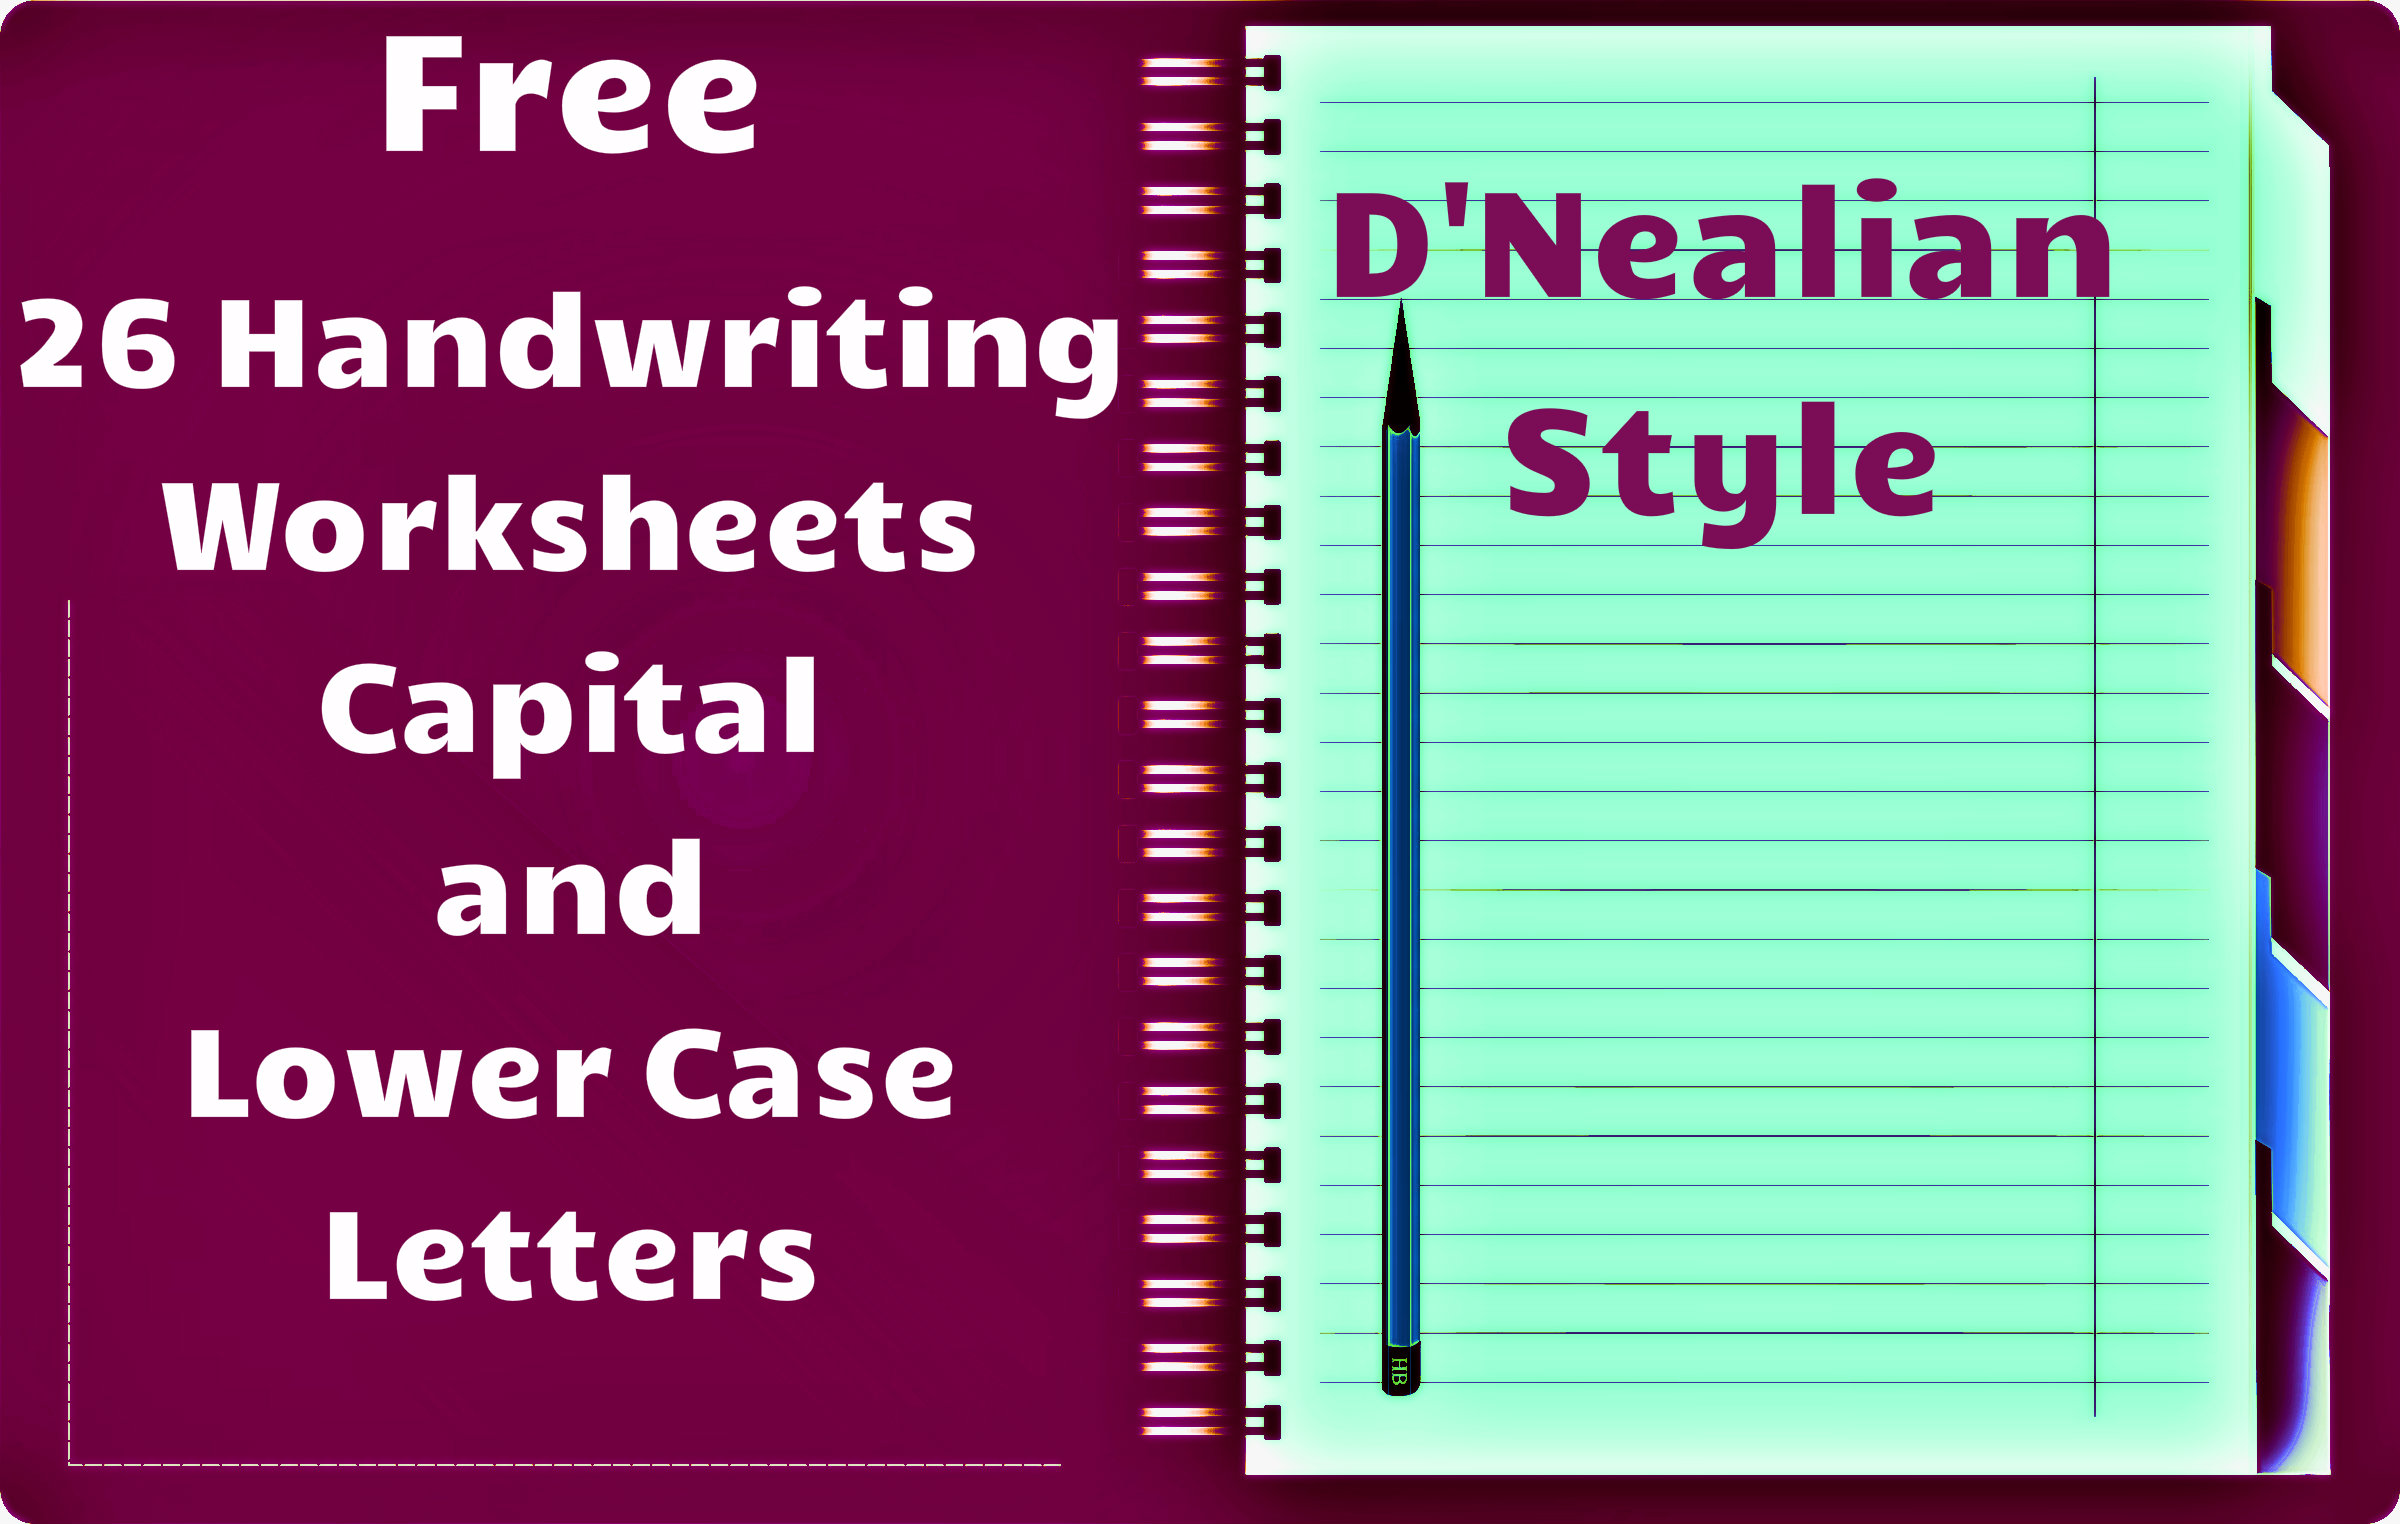 Free Handwriting Worksheets – D Nealian Handwriting Worksheet